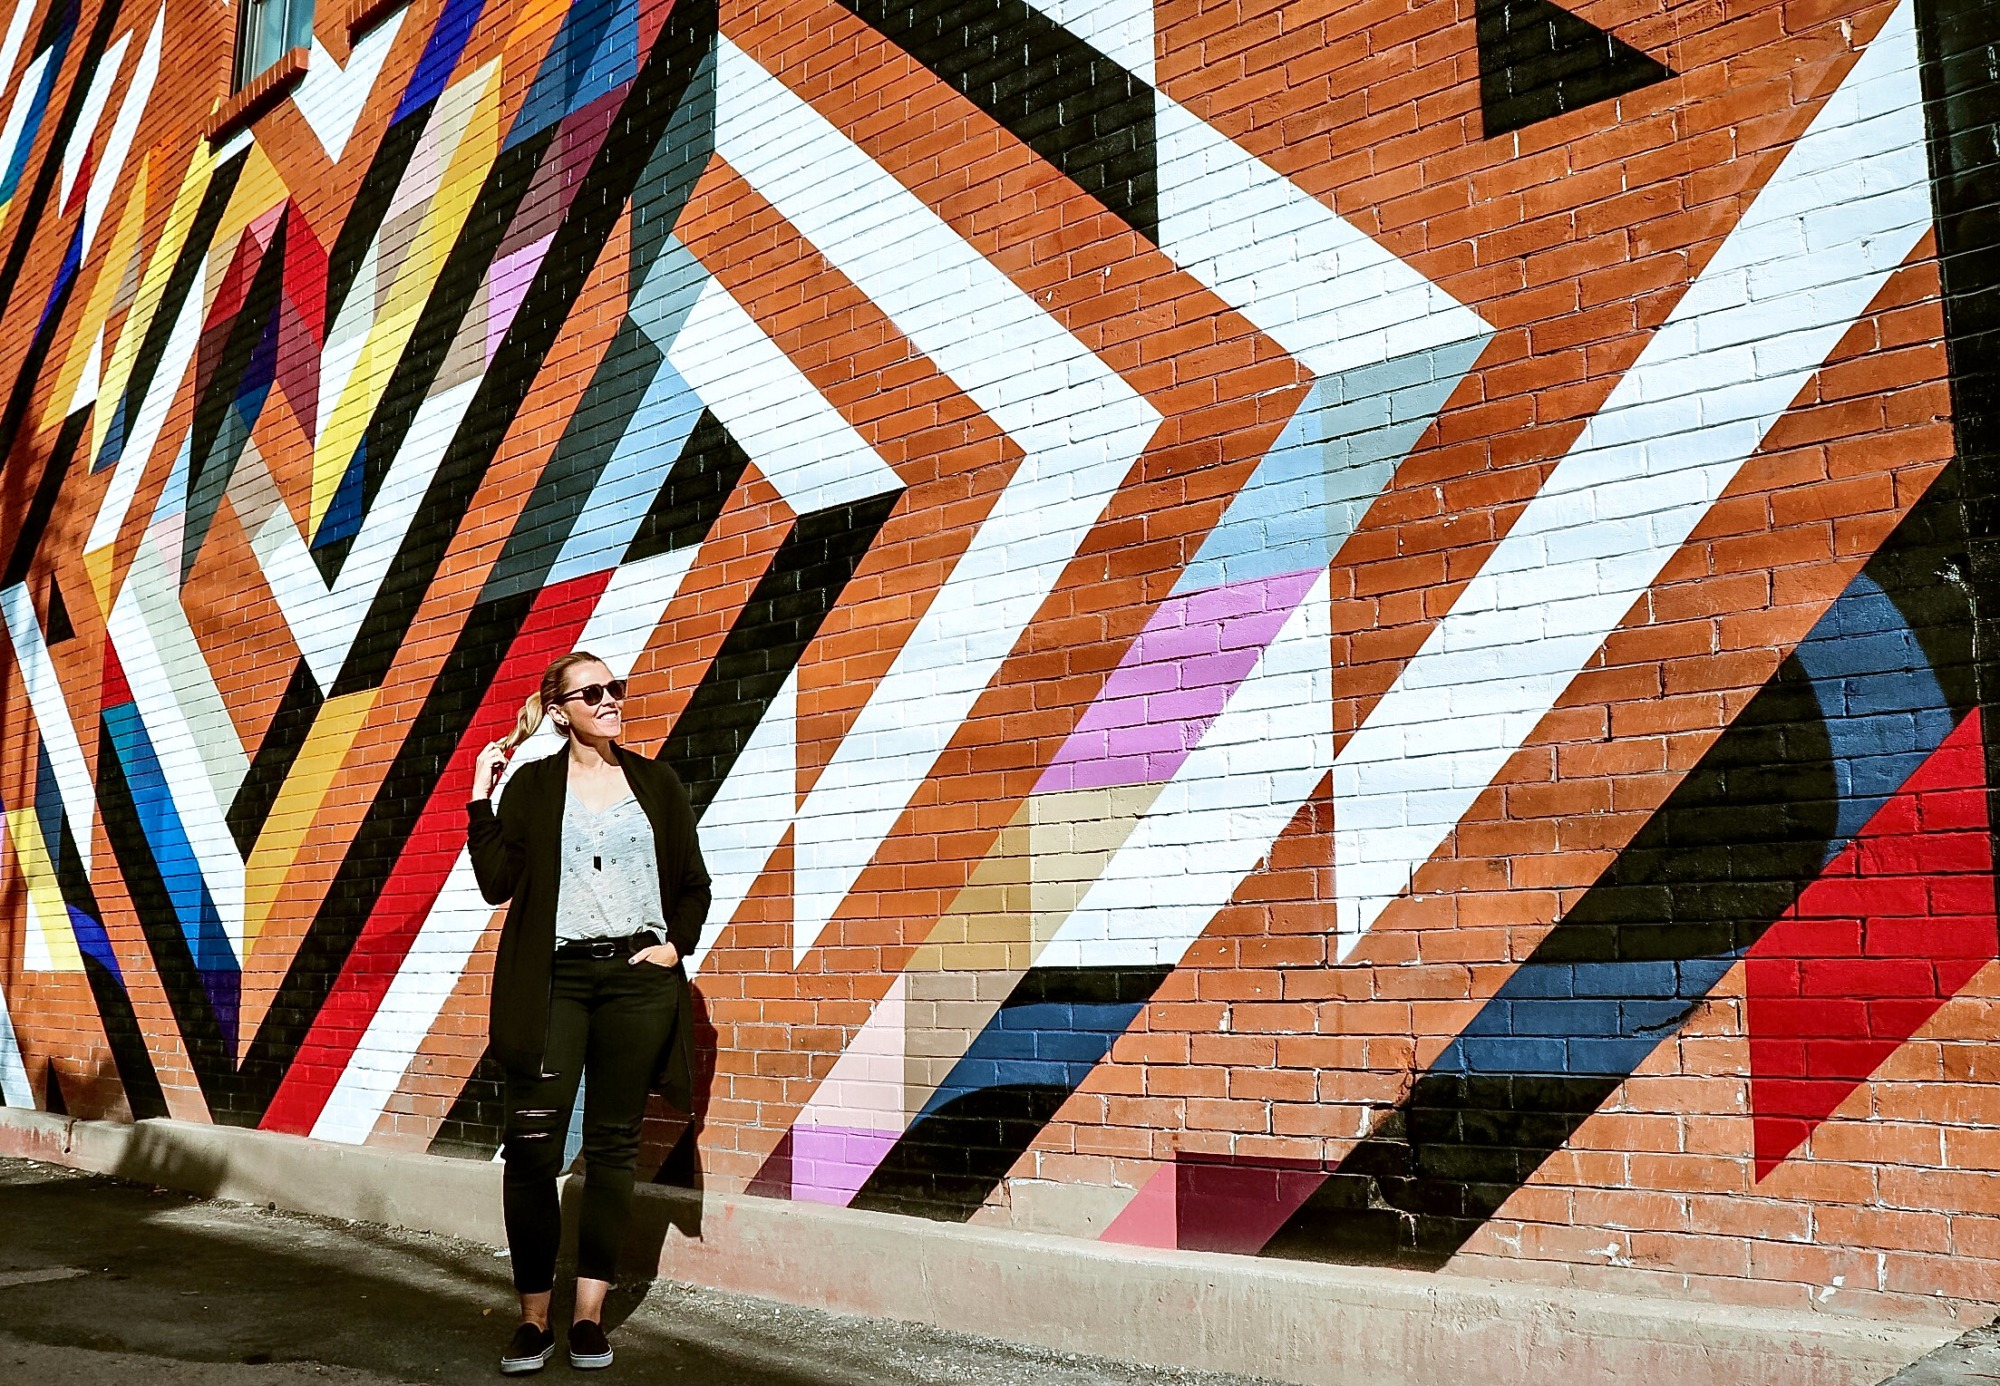 Instagrammable Walls in Calgary